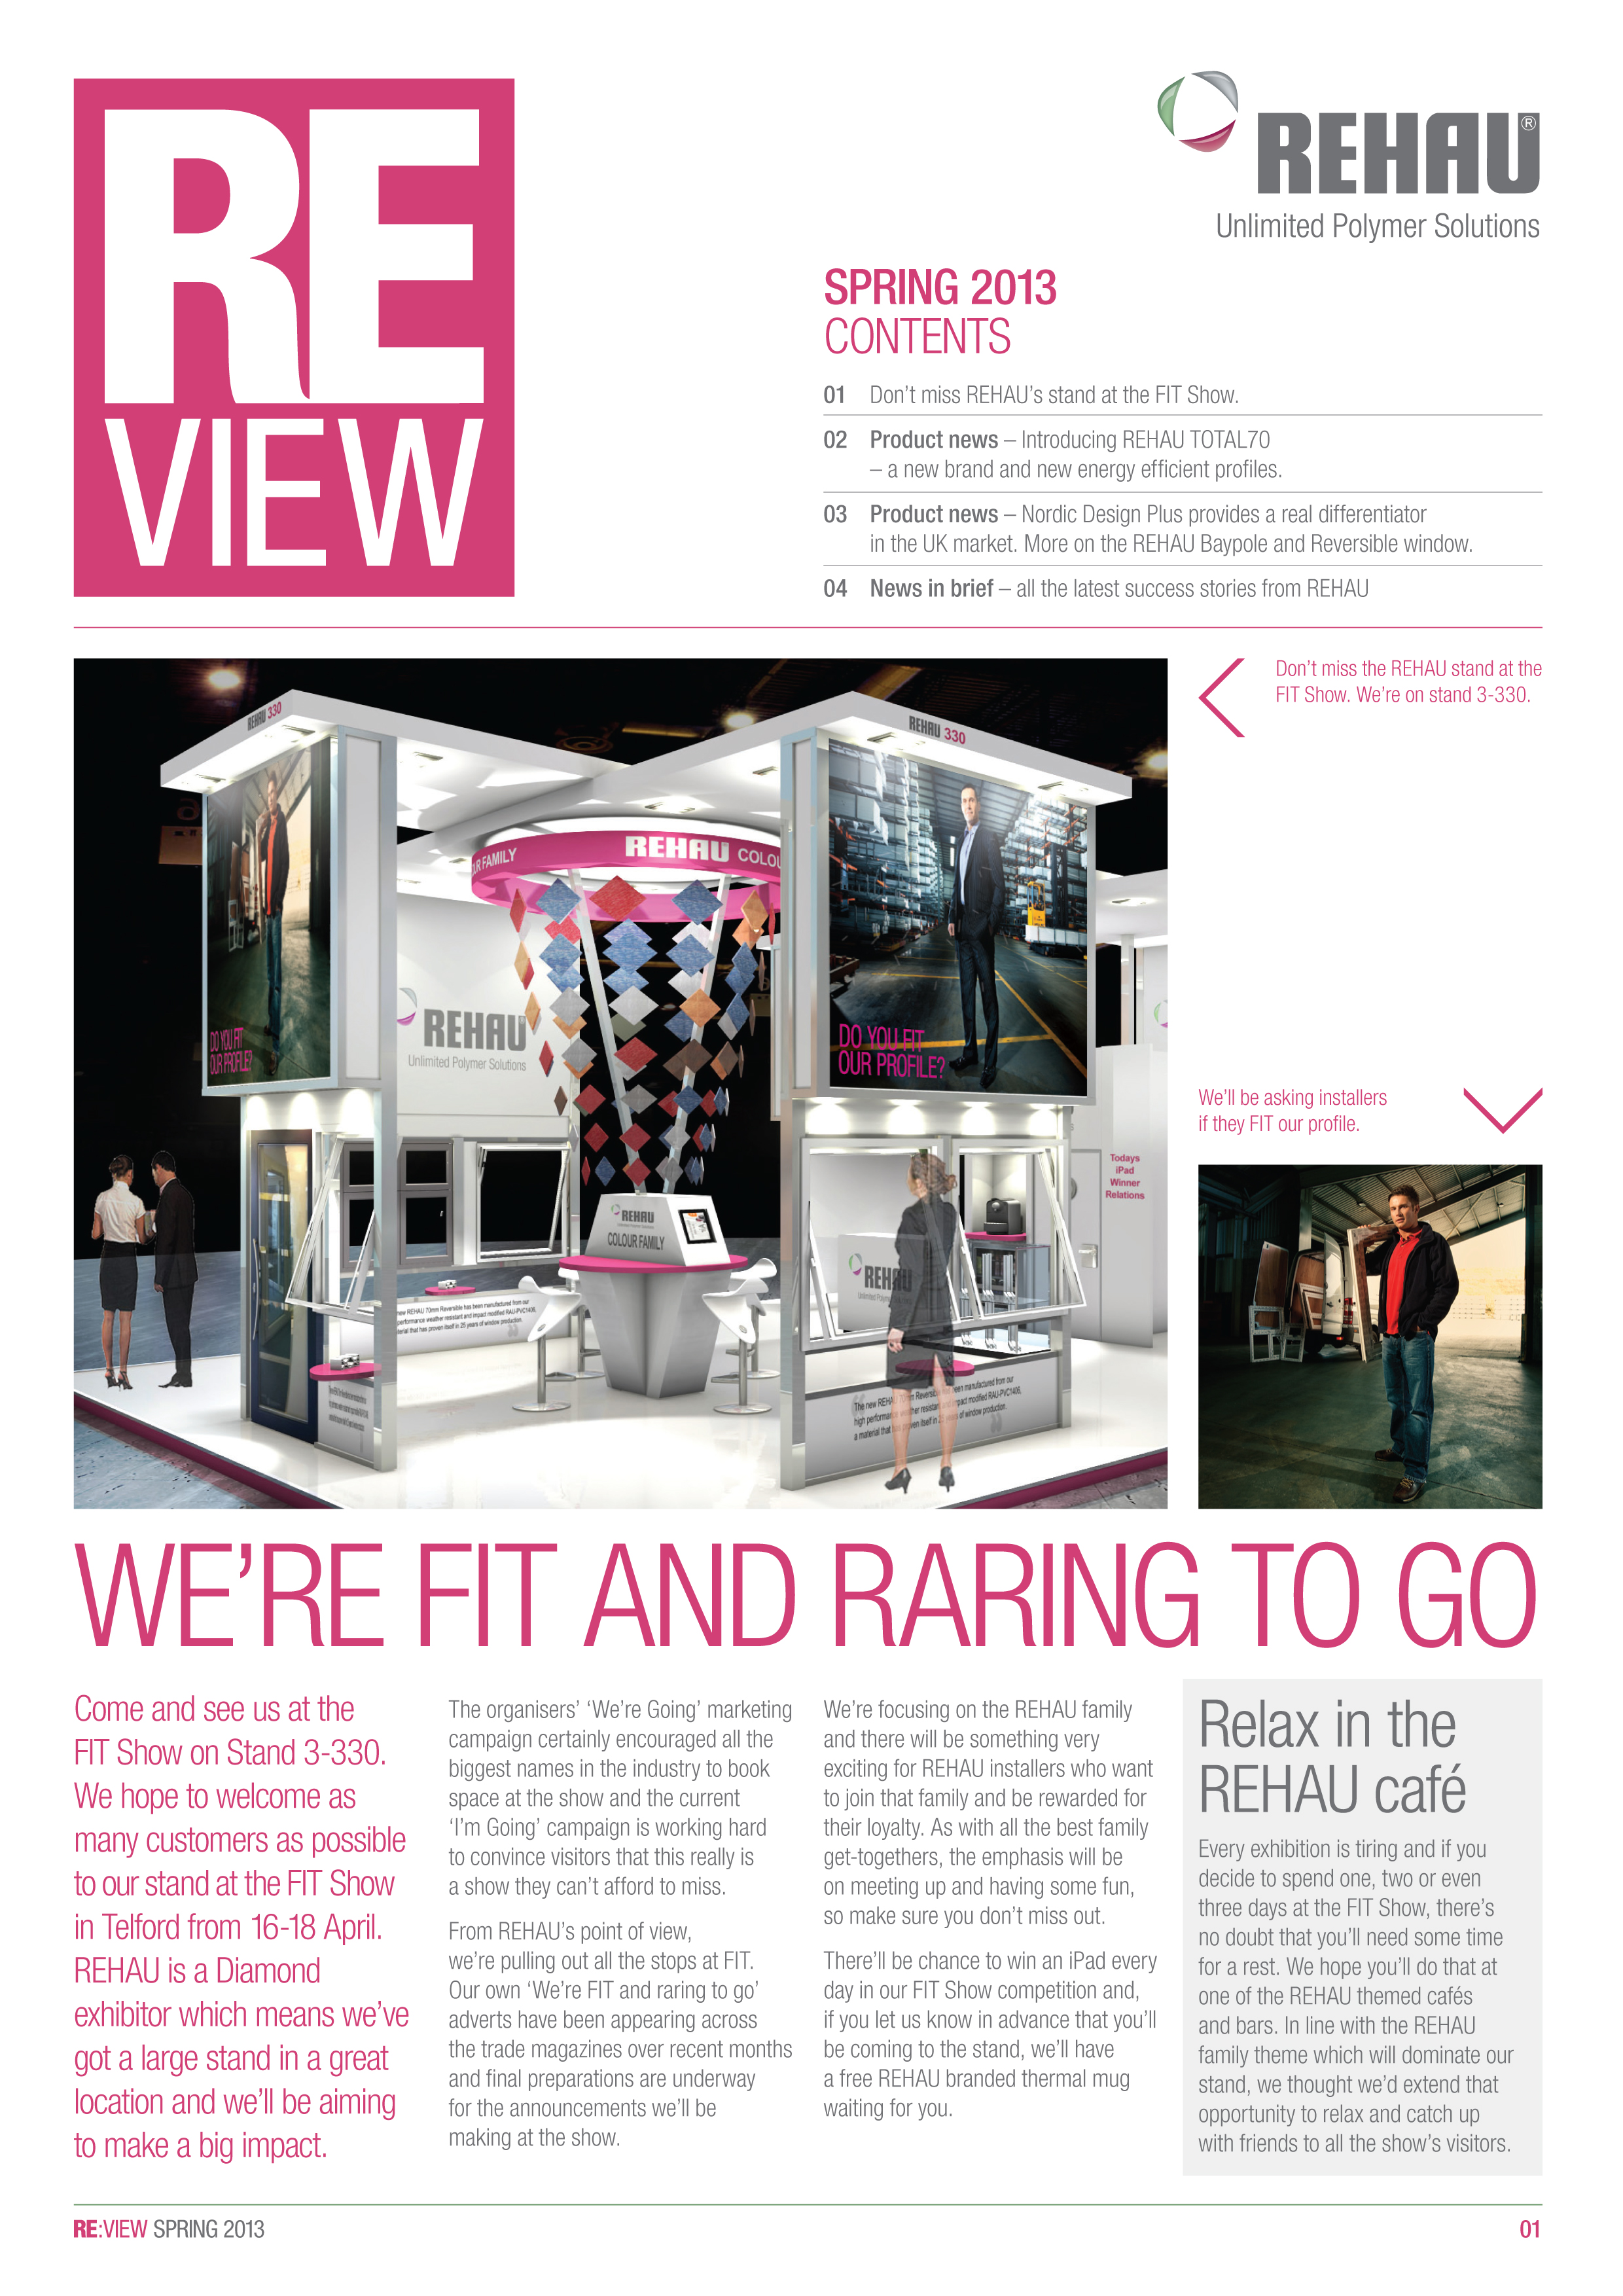 REHAU LAUNCHES ITS OWN FIT SHOW NEWSLETTER